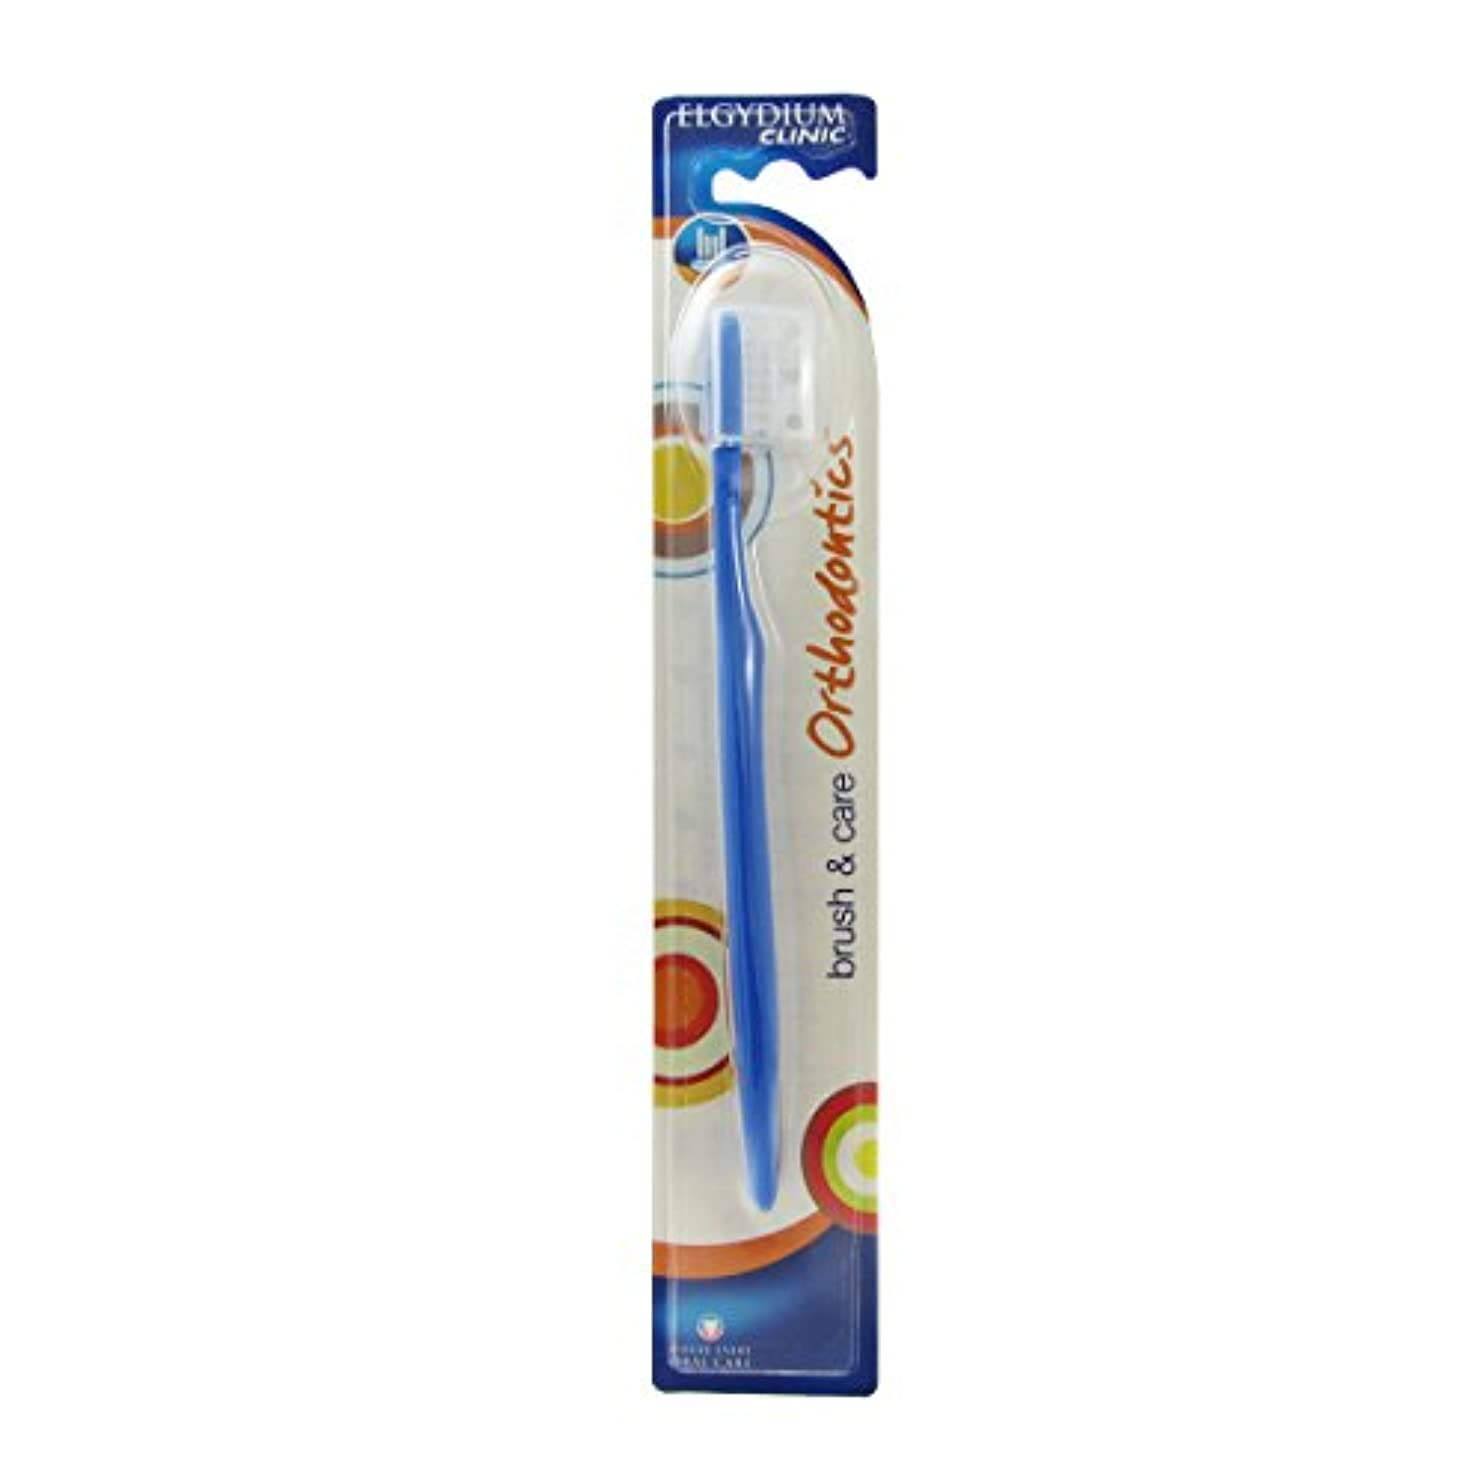 納得させるメッセンジャー怒ってElgydium Clinic Orthodontics Orthodontic Medium Children Toothbrush [並行輸入品]